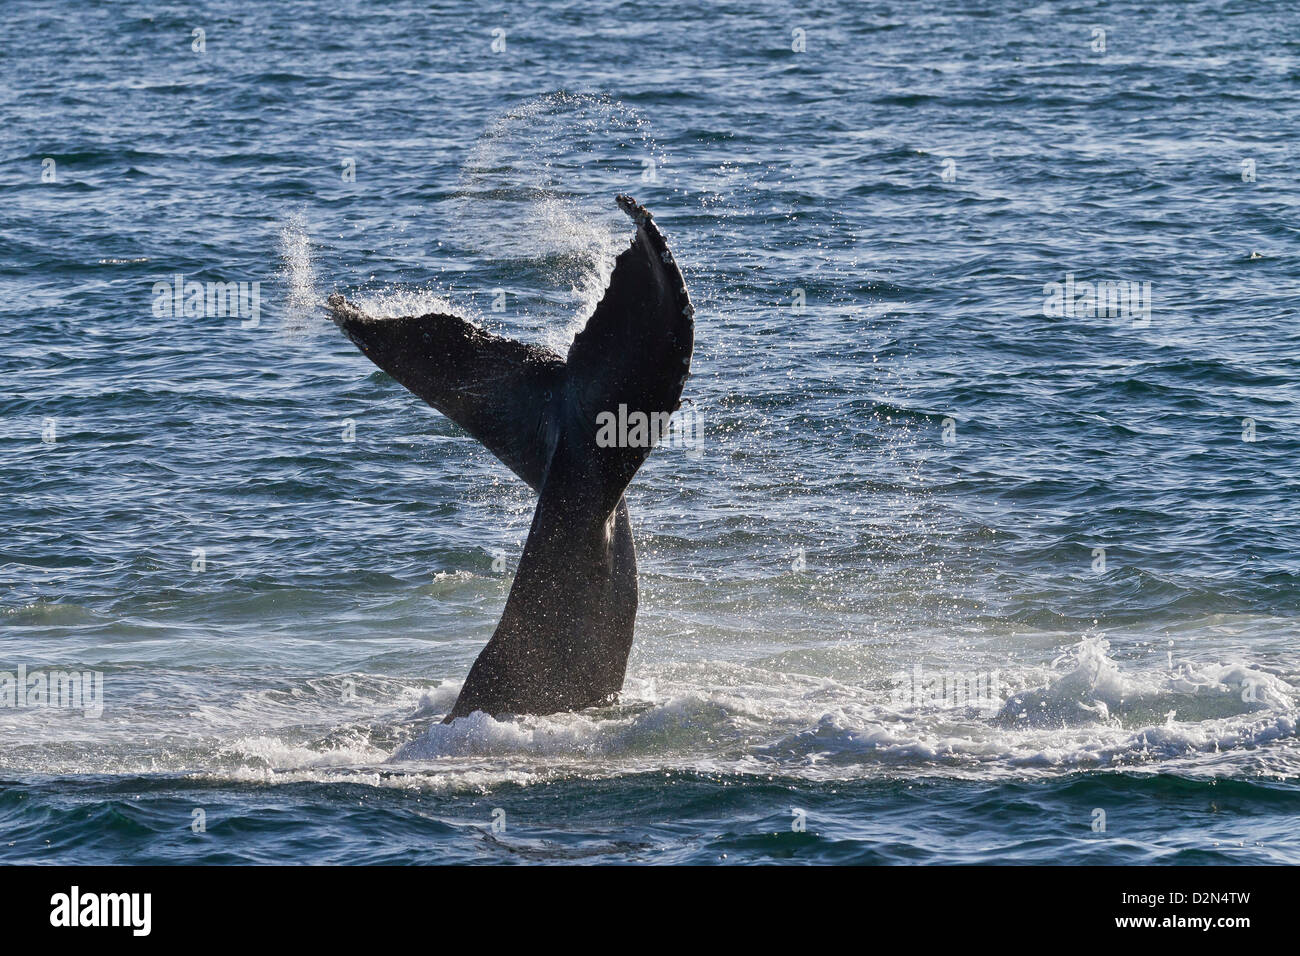 Humpback whale (Megaptera novaeangliae) tail slap, Gulf of California (Sea of Cortez), Baja California Sur, Mexico Stock Photo